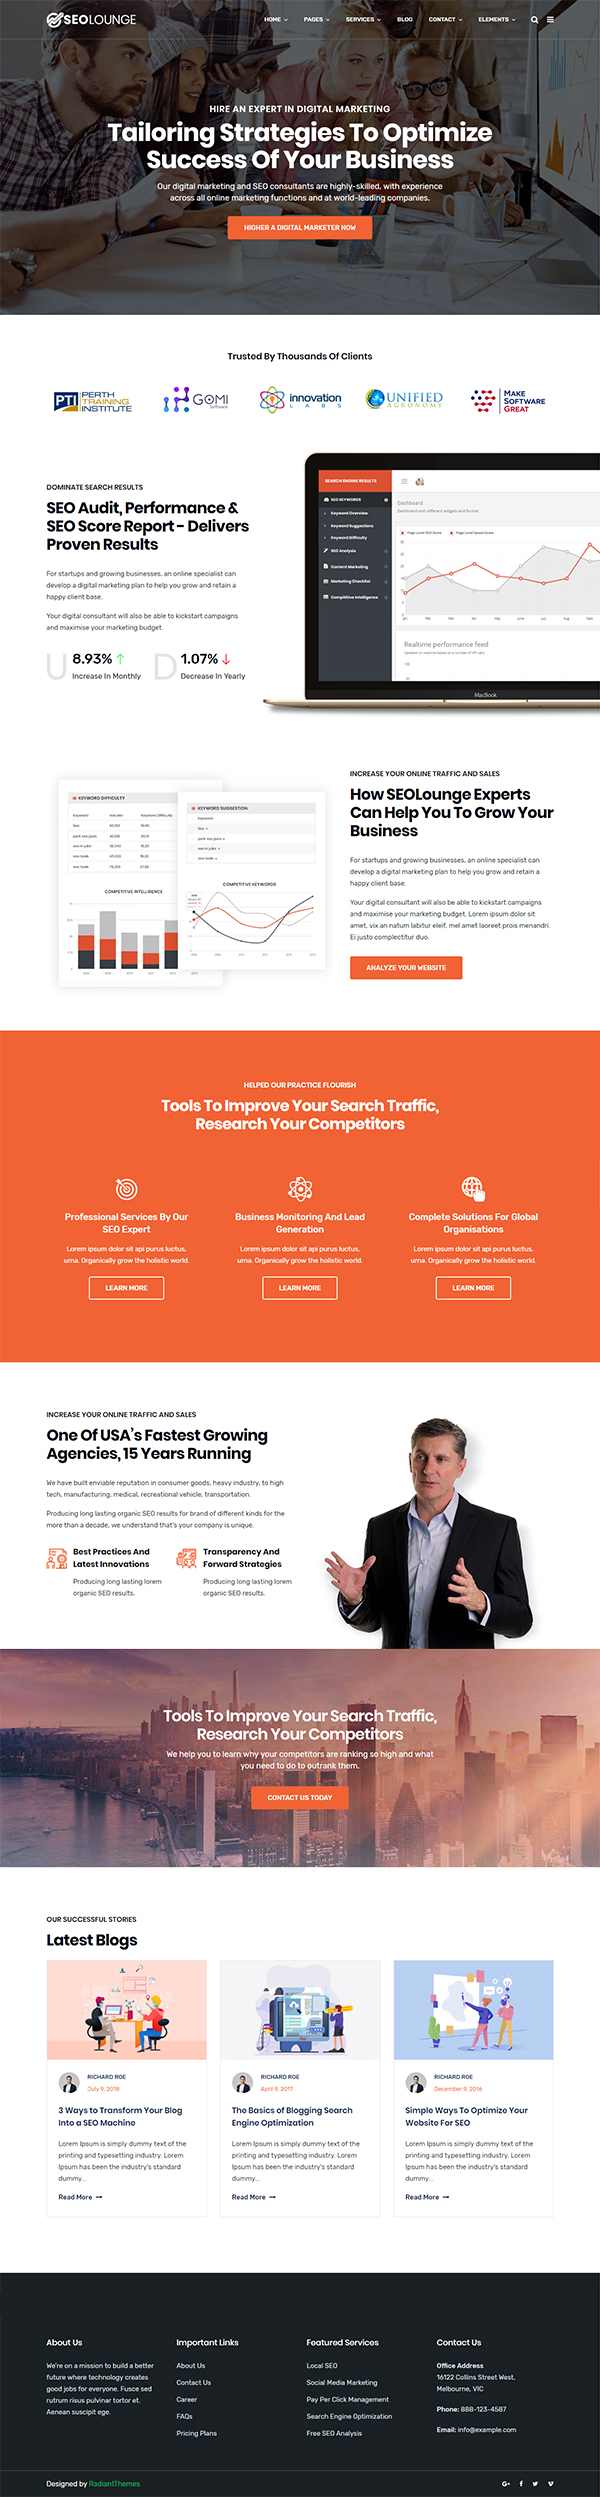 SEOLounge - SEO Agency WordPress Theme